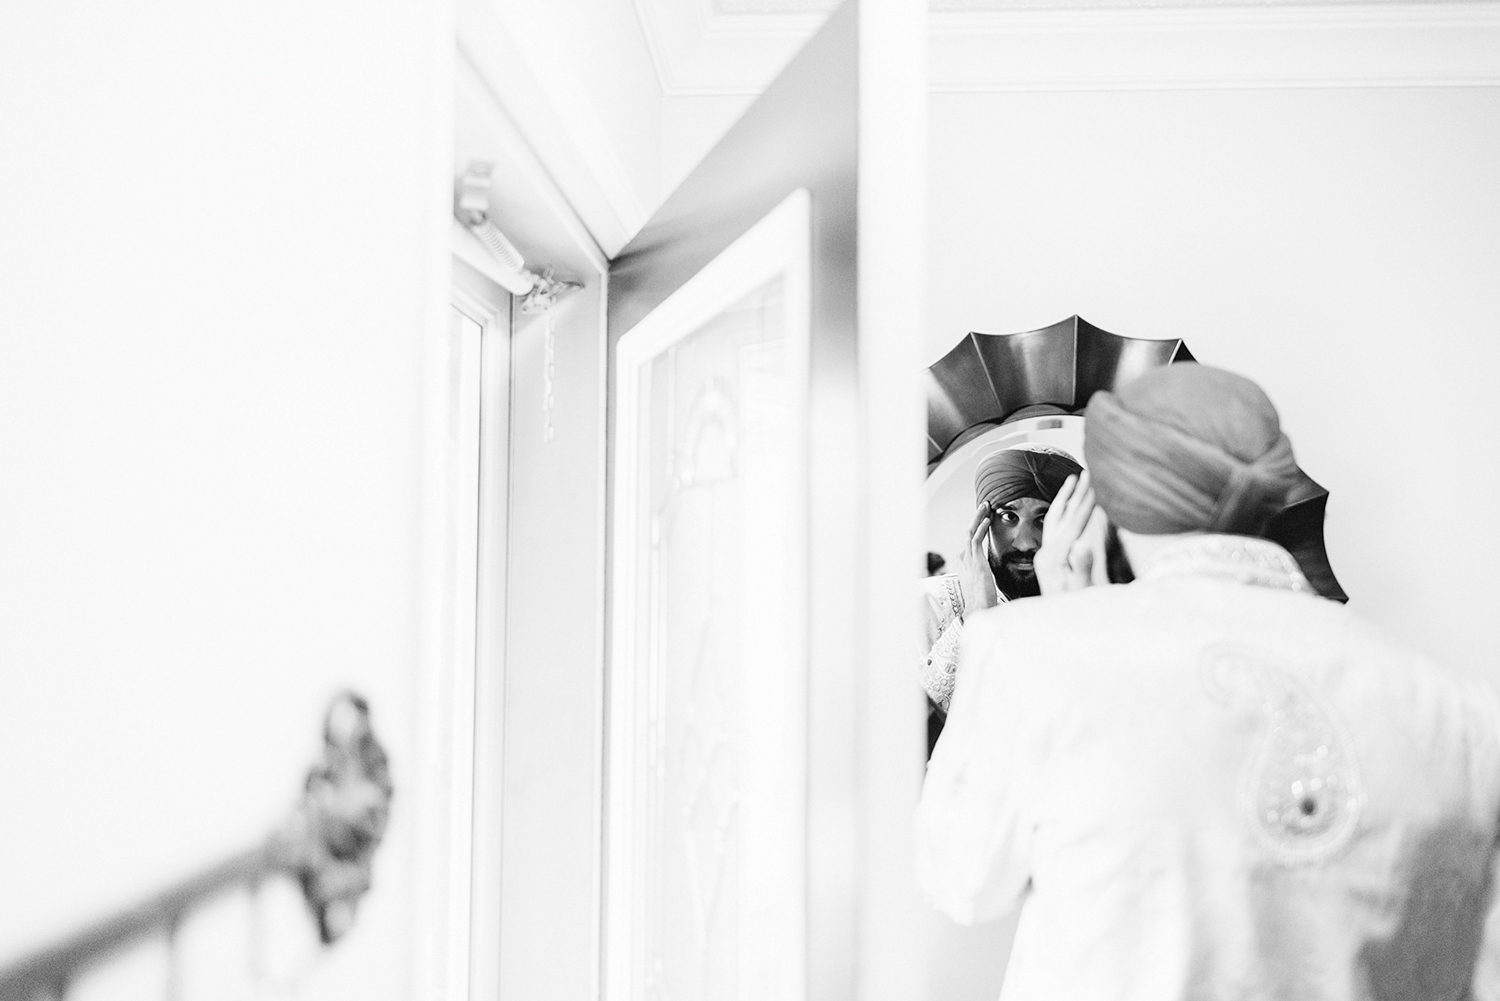 Toronto-Photojournalism-wedding-photographers-3B-Photography-Candid-Documentary-Film-Photography-Analog-Ontario-Hamilton-Port-Perry-Venue-Groom-Getting-Ready-putting-on-turban-sikh-ceremony-traditional-garments-reflection.jpg